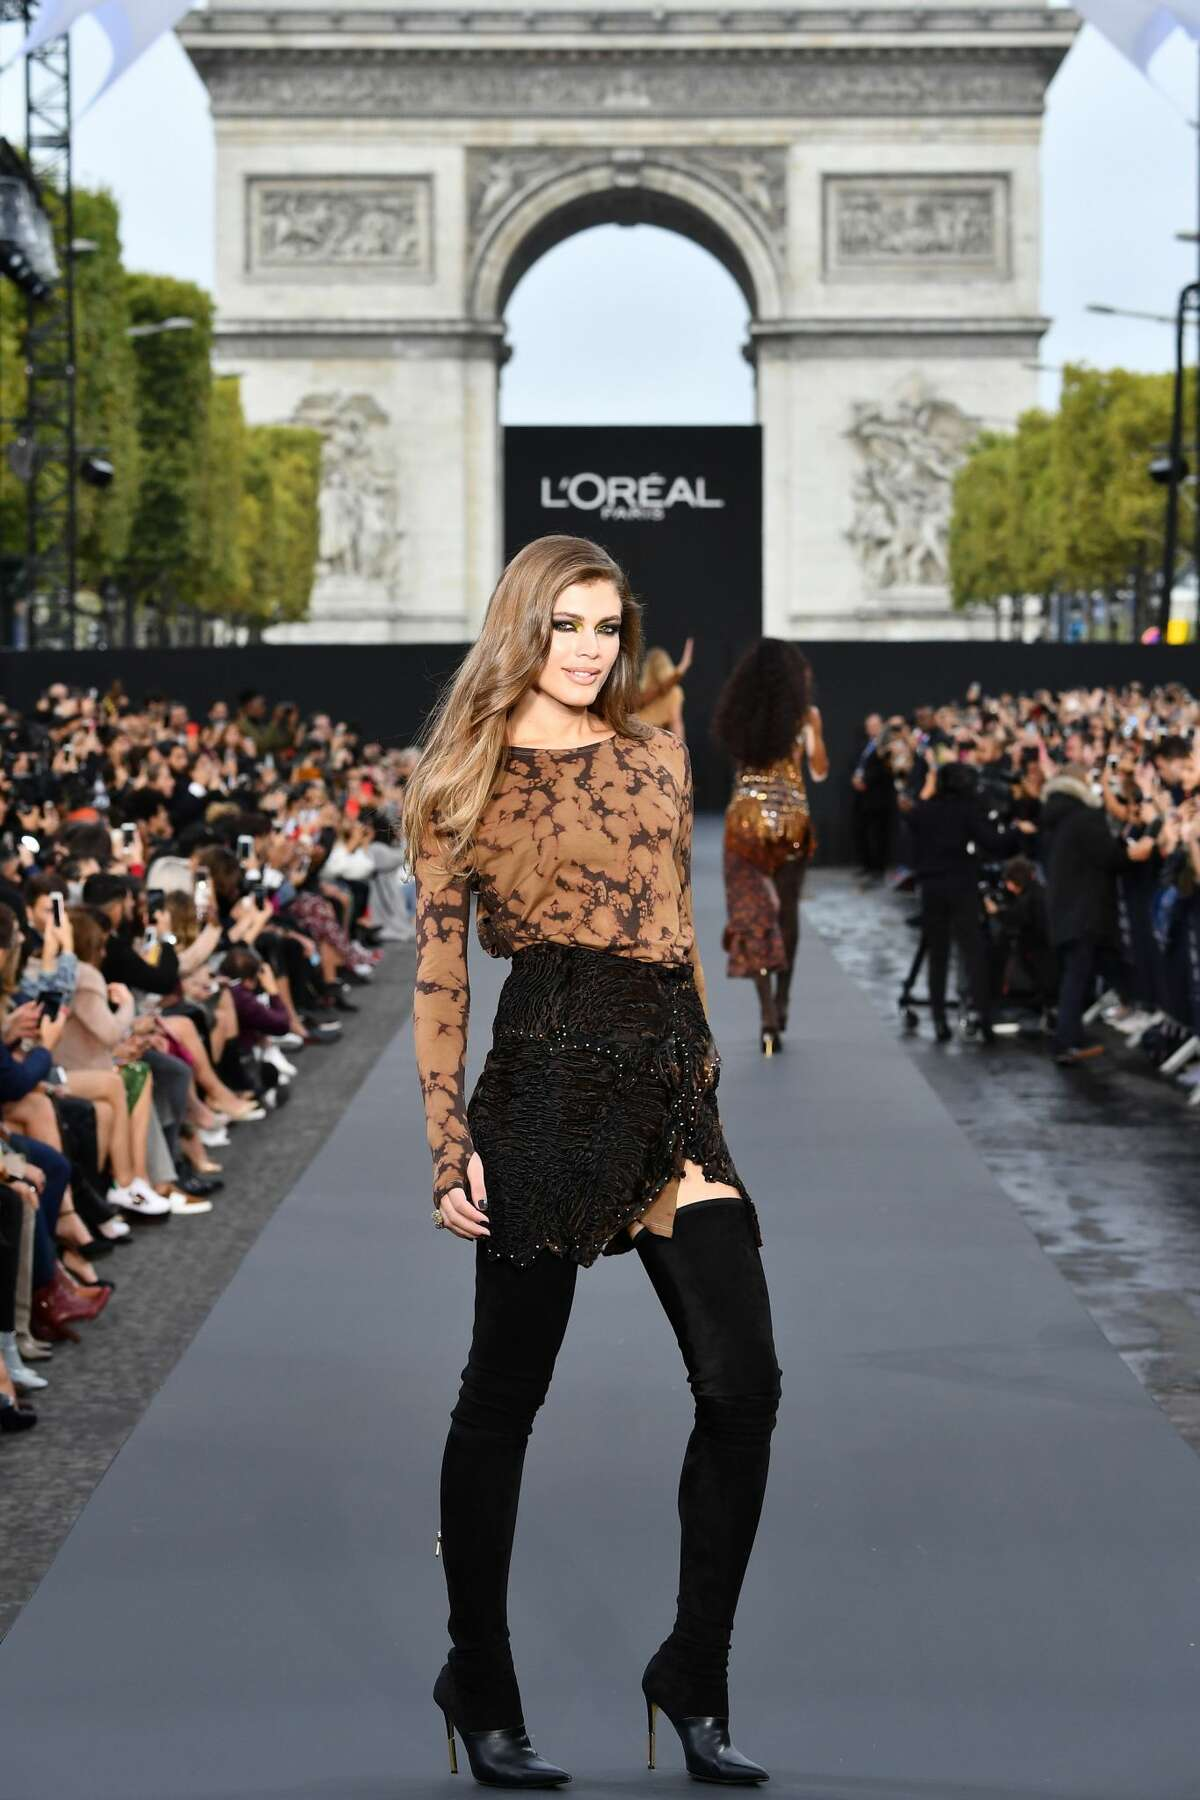 PARIS, FRANCE - OCTOBER 01: Valentina Sampaio walks the runway during Le Defile L'Oreal Paris as part of Paris Fashion Week Womenswear Spring/Summer 2018 at Avenue Des Champs Elysees on October 1, 2017 in Paris, France. (Photo by Pascal Le Segretain/Getty Images for L'Oreal Paris)